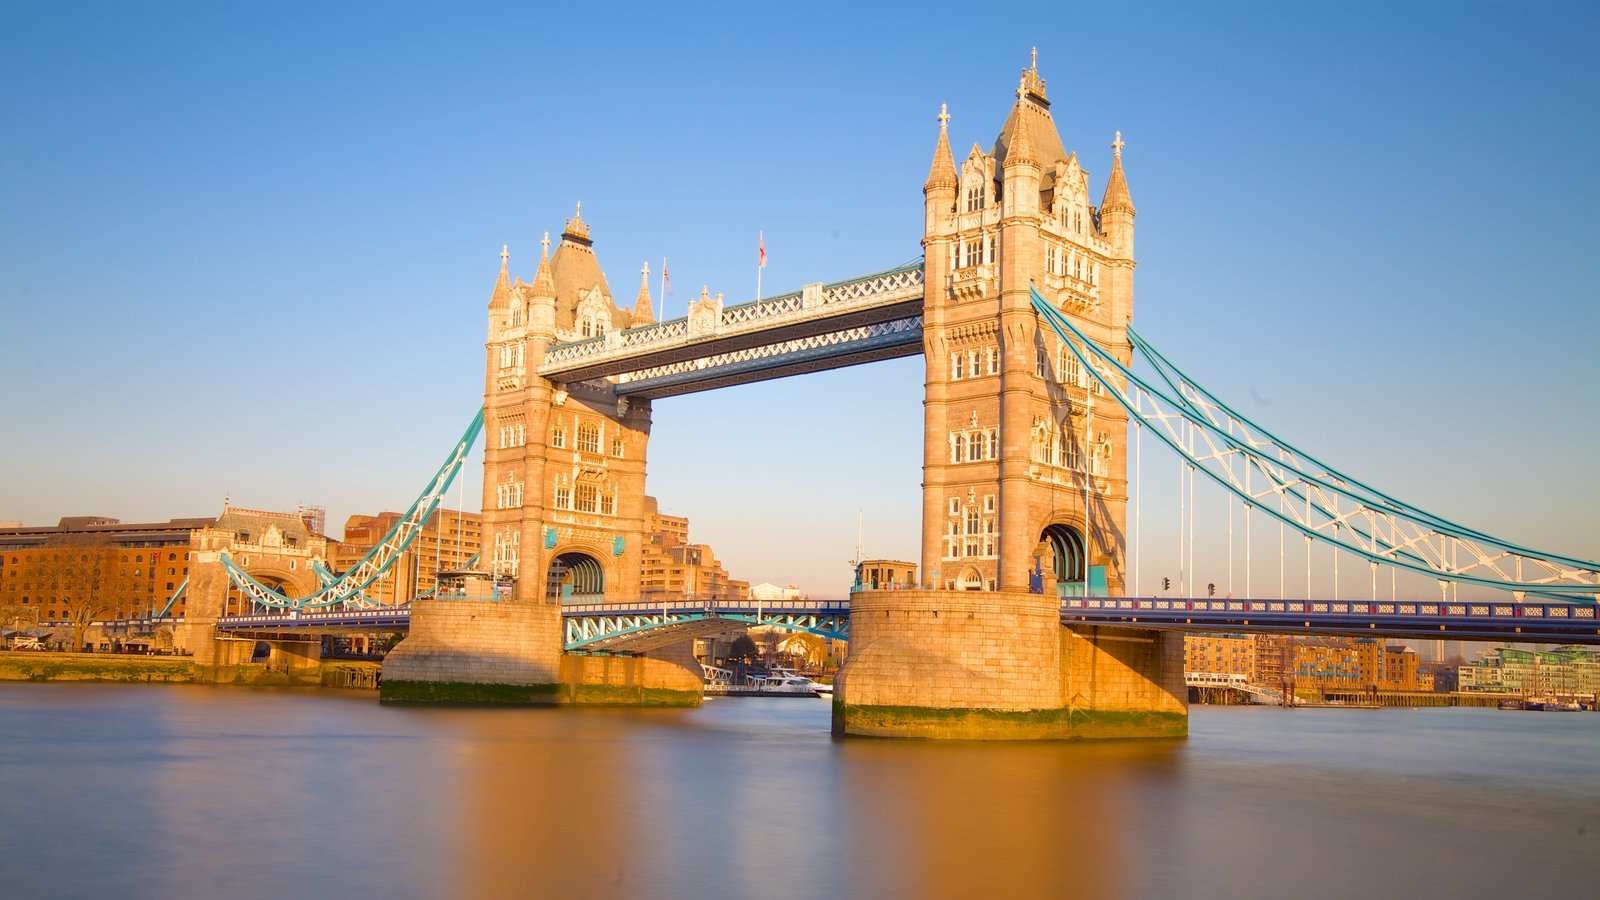 Tower Bridge featuring heritage architecture, a bridge and a bay or harbor